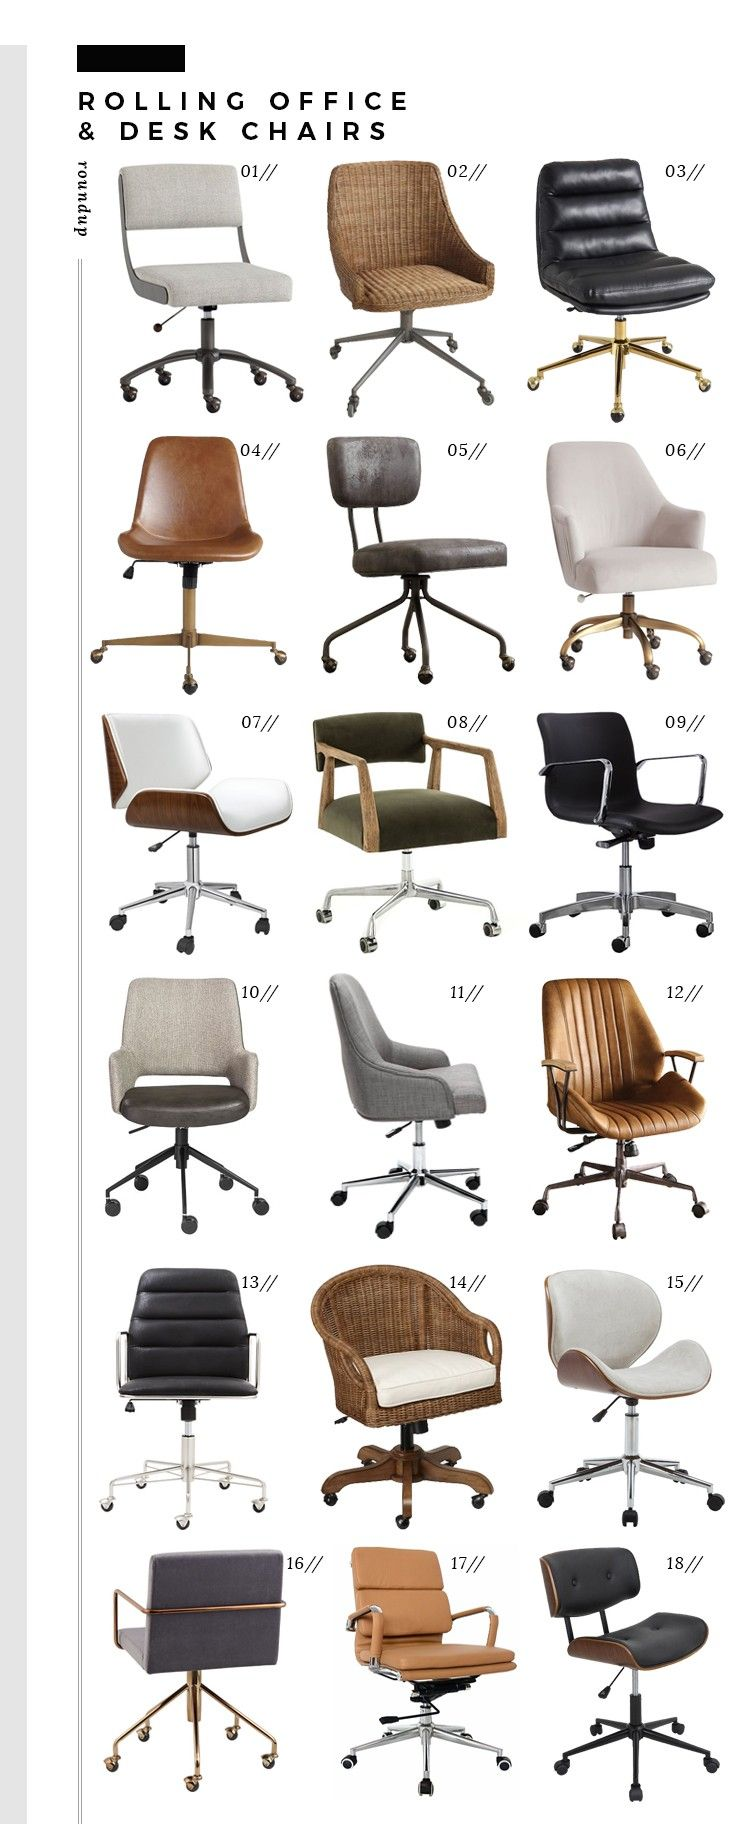 Roundup Rolling Office Desk Chairs Office Chair Design Best Office Chair Black Office Chair